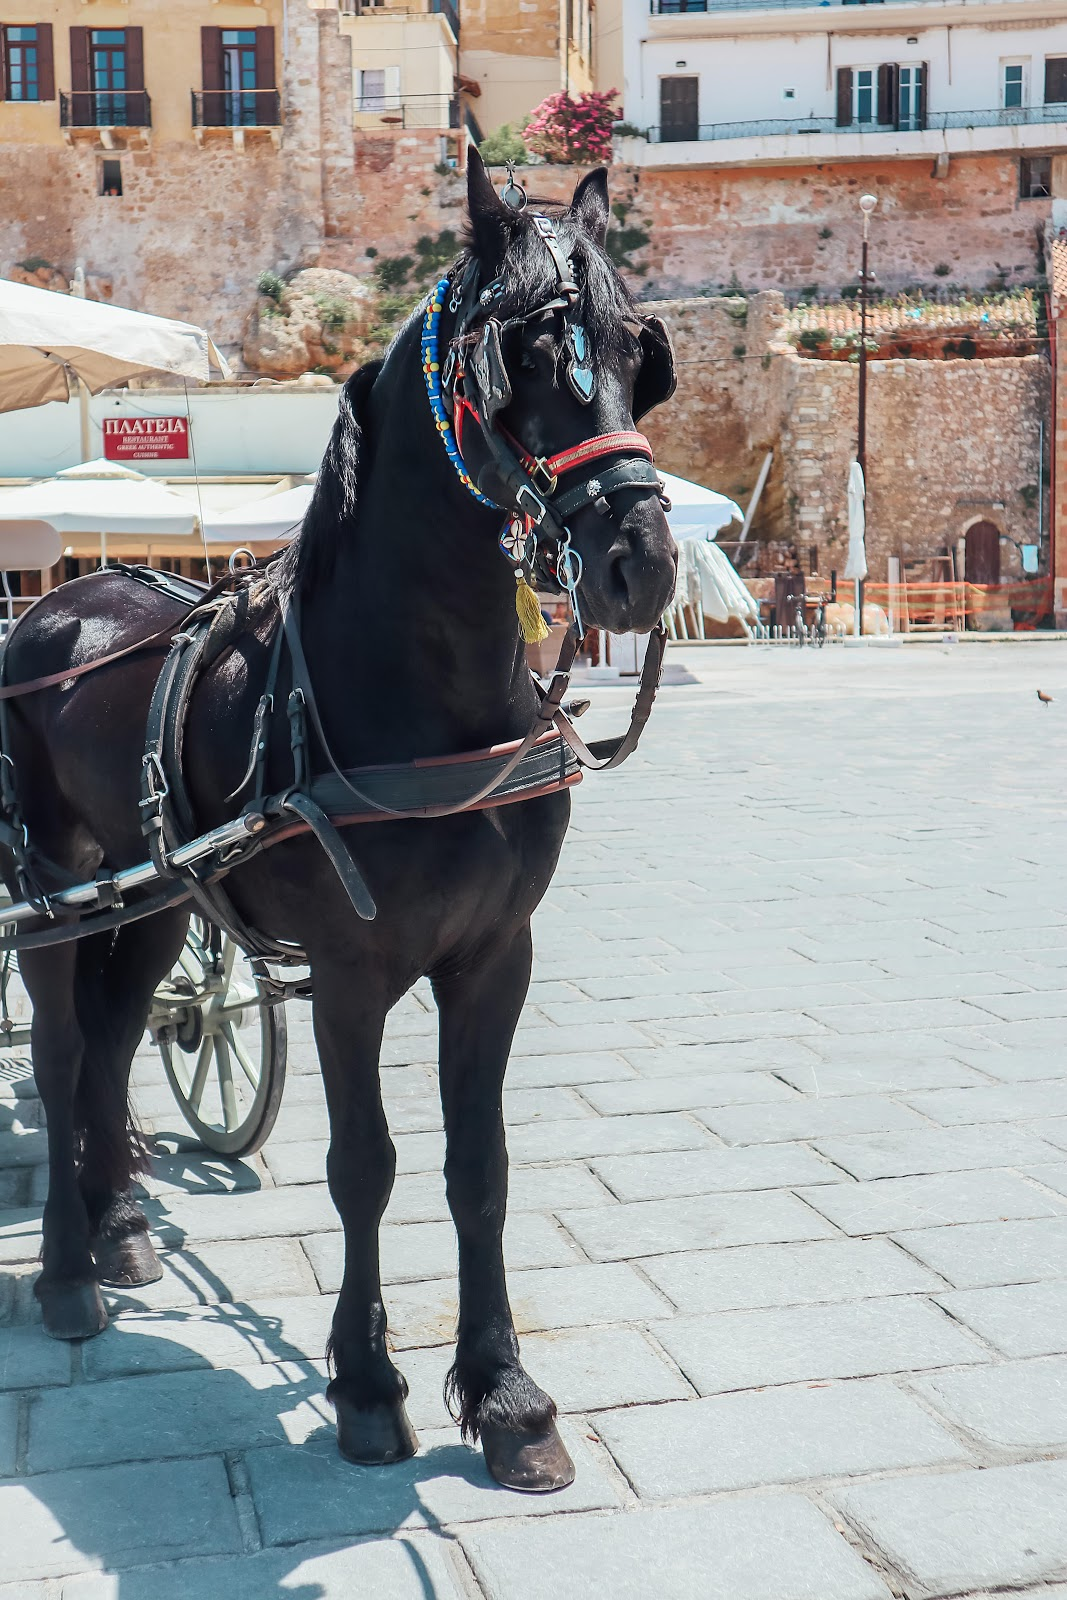 Horse ride in Chania